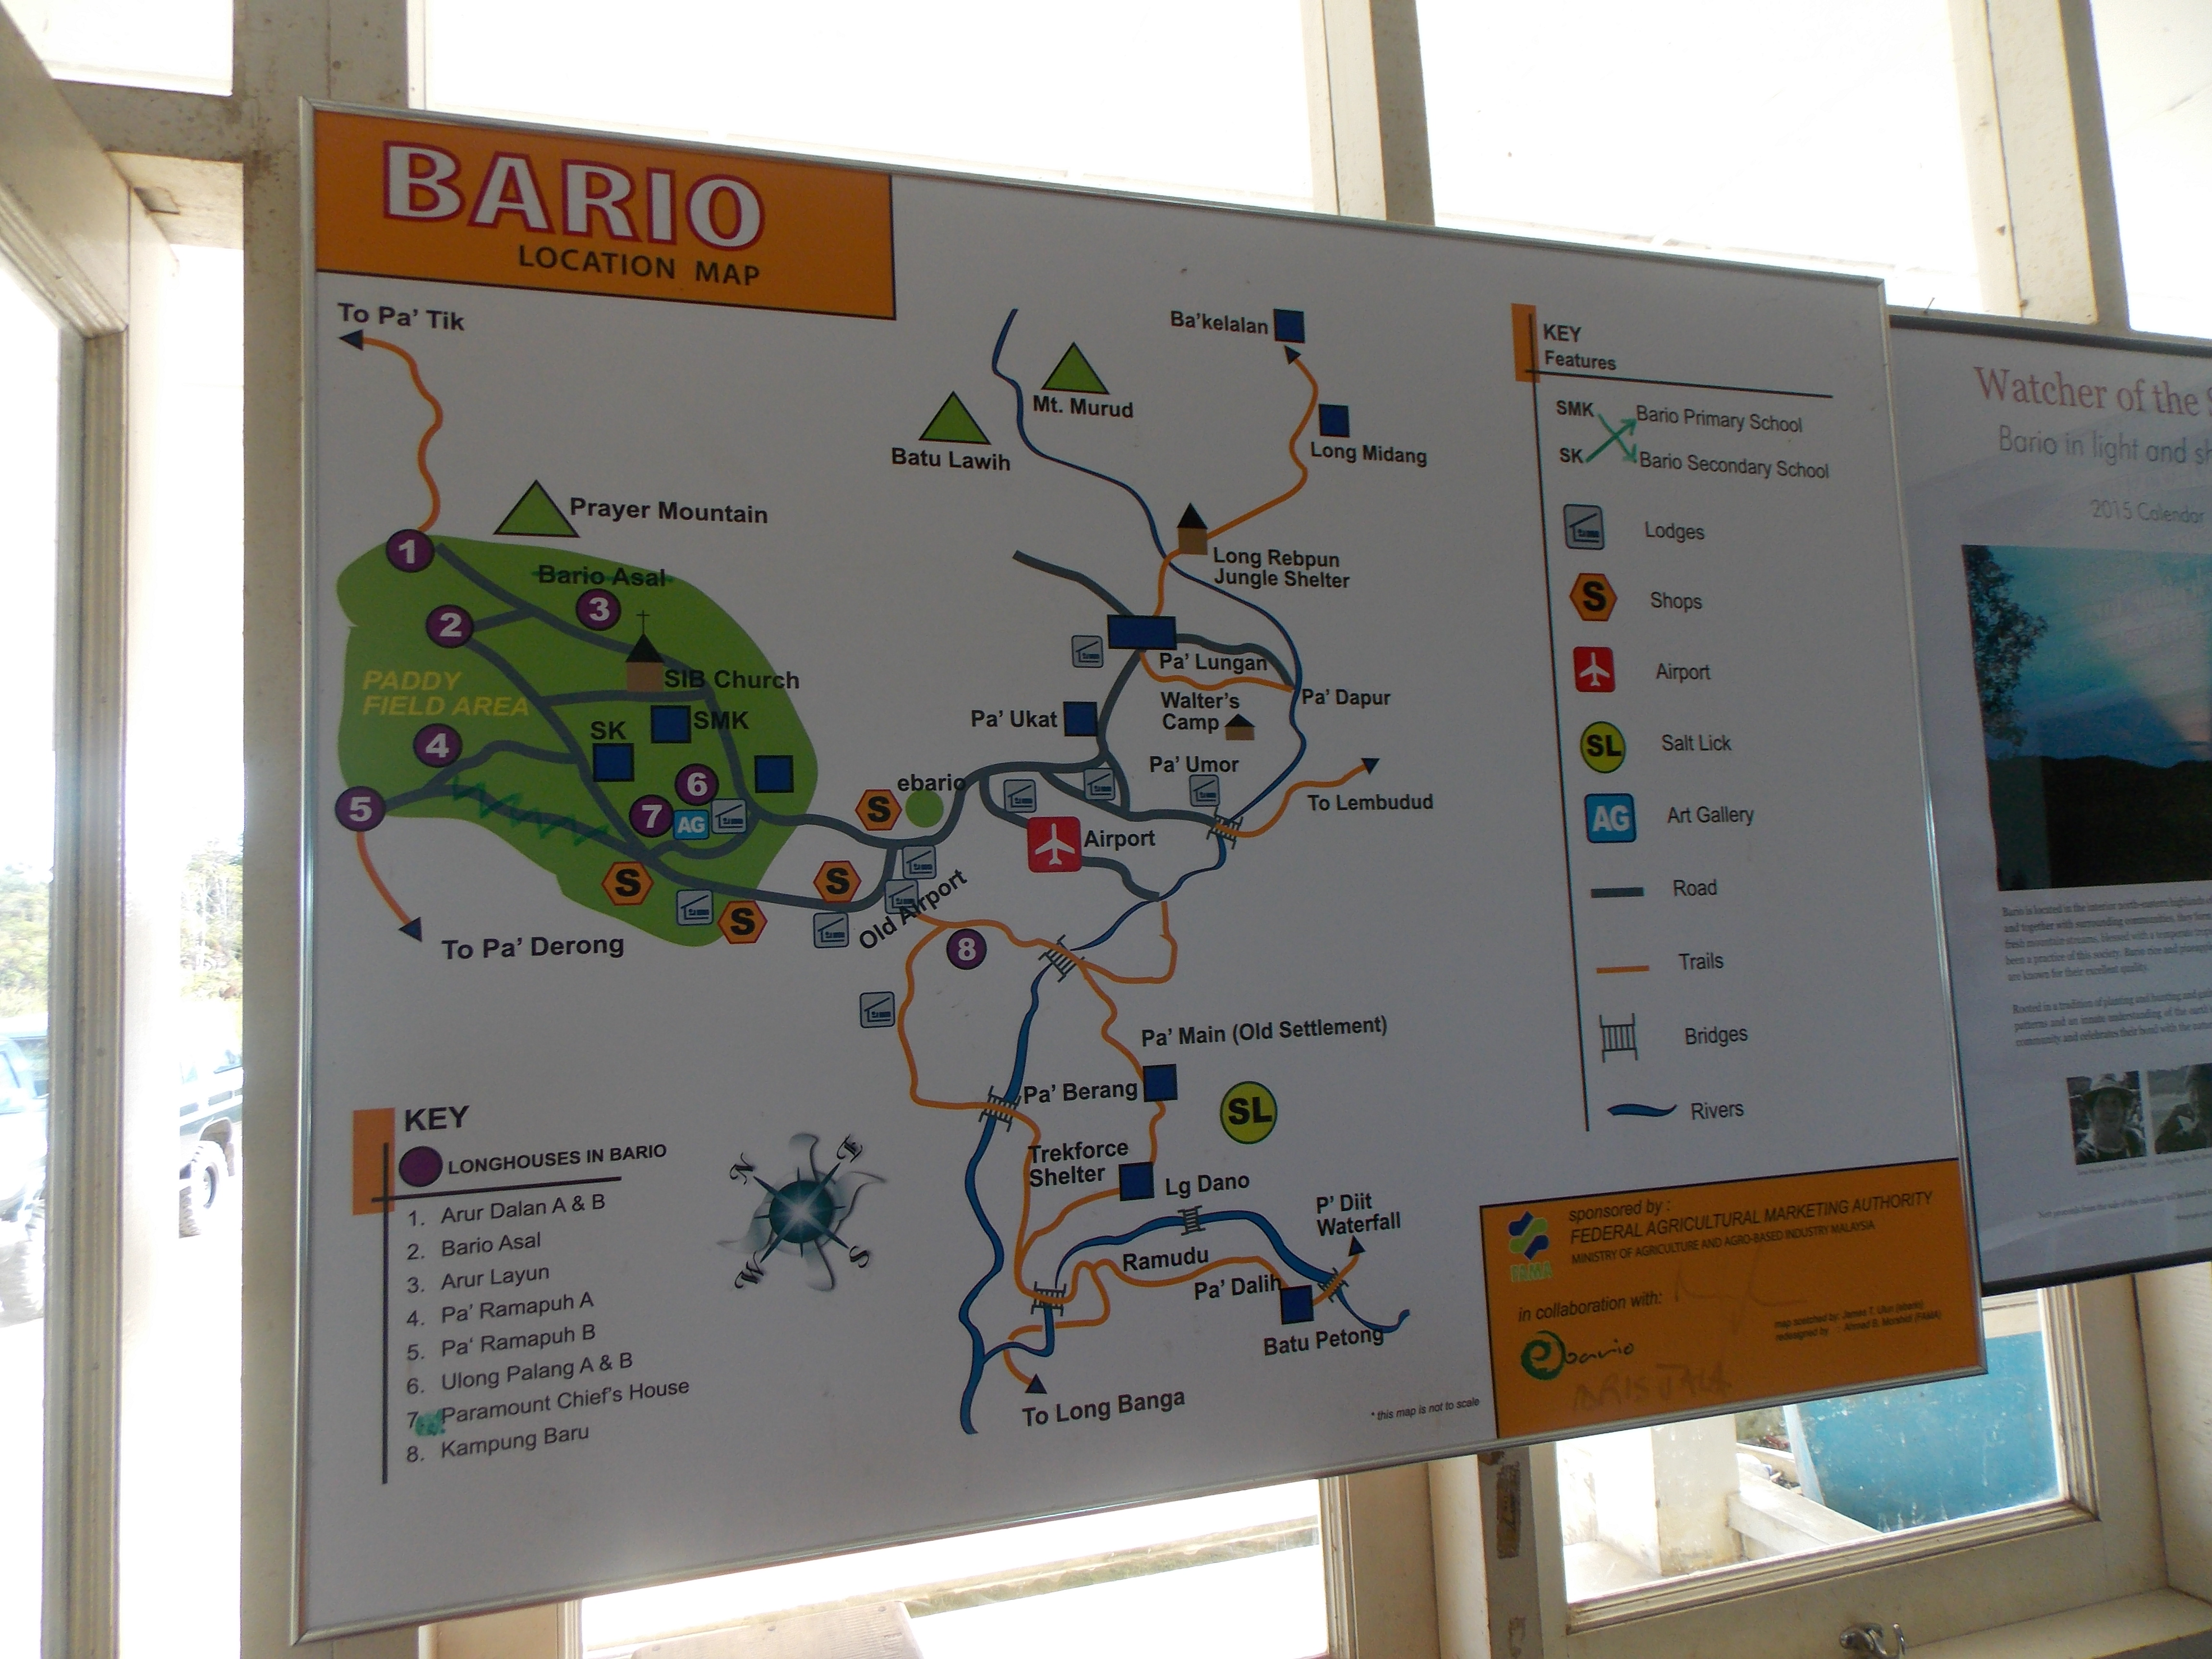 195-map-of-bario-area-at-airport